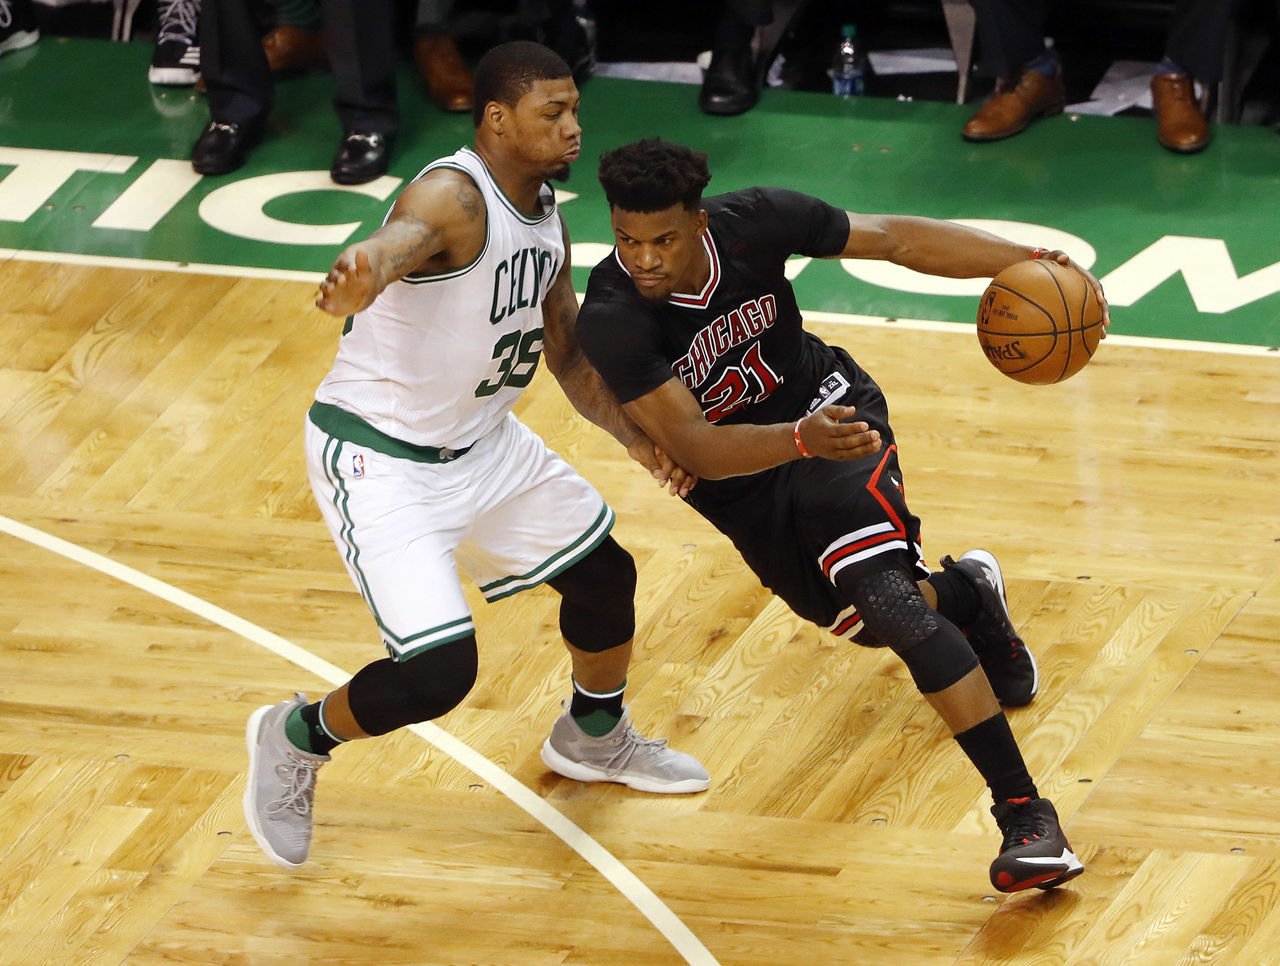 Cropped 2017 04 17t003300z 673103872 nocid rtrmadp 3 nba playoffs chicago bulls at boston celtics